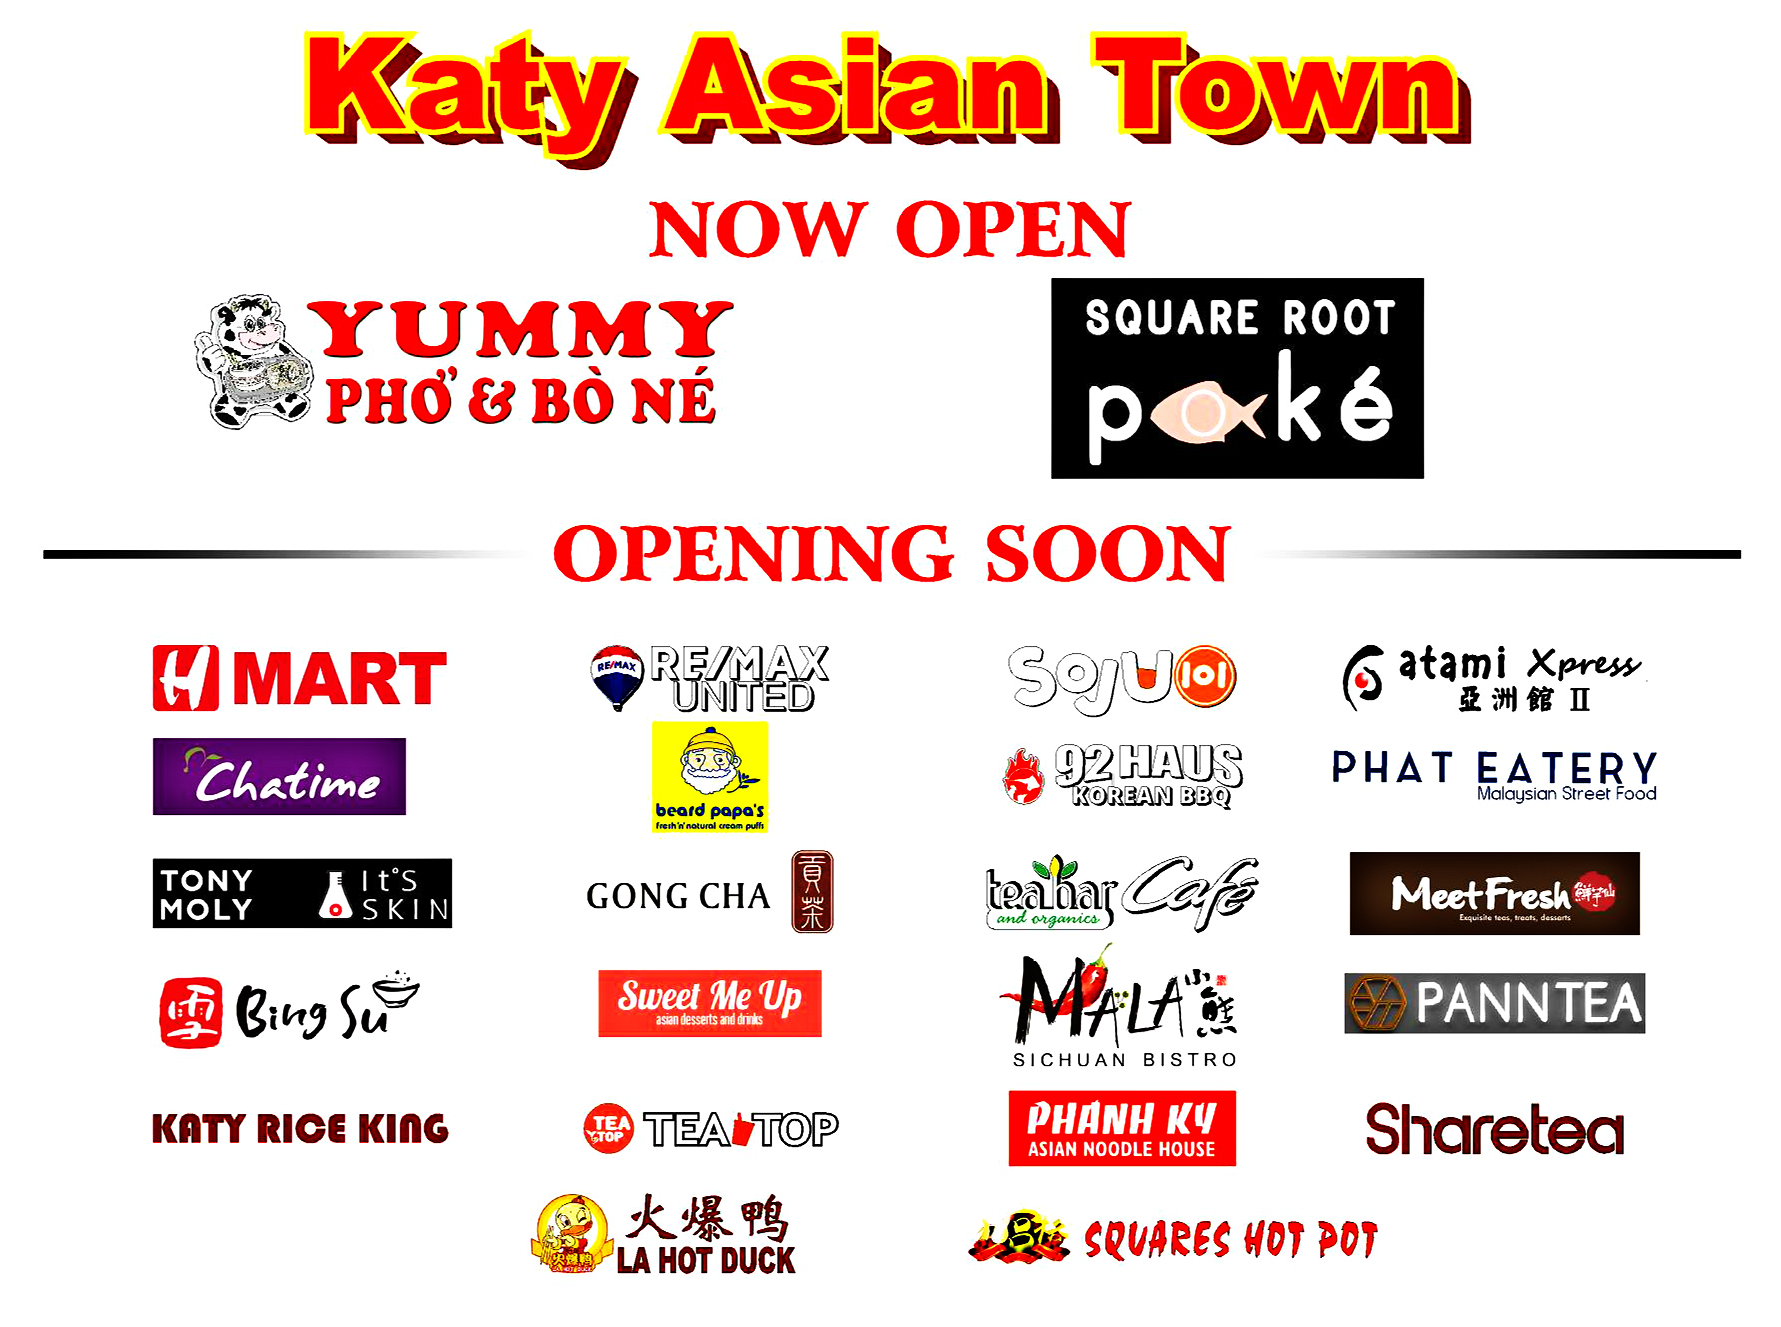 Katy Asian Town gonna be lit homies | TigerDroppings.com